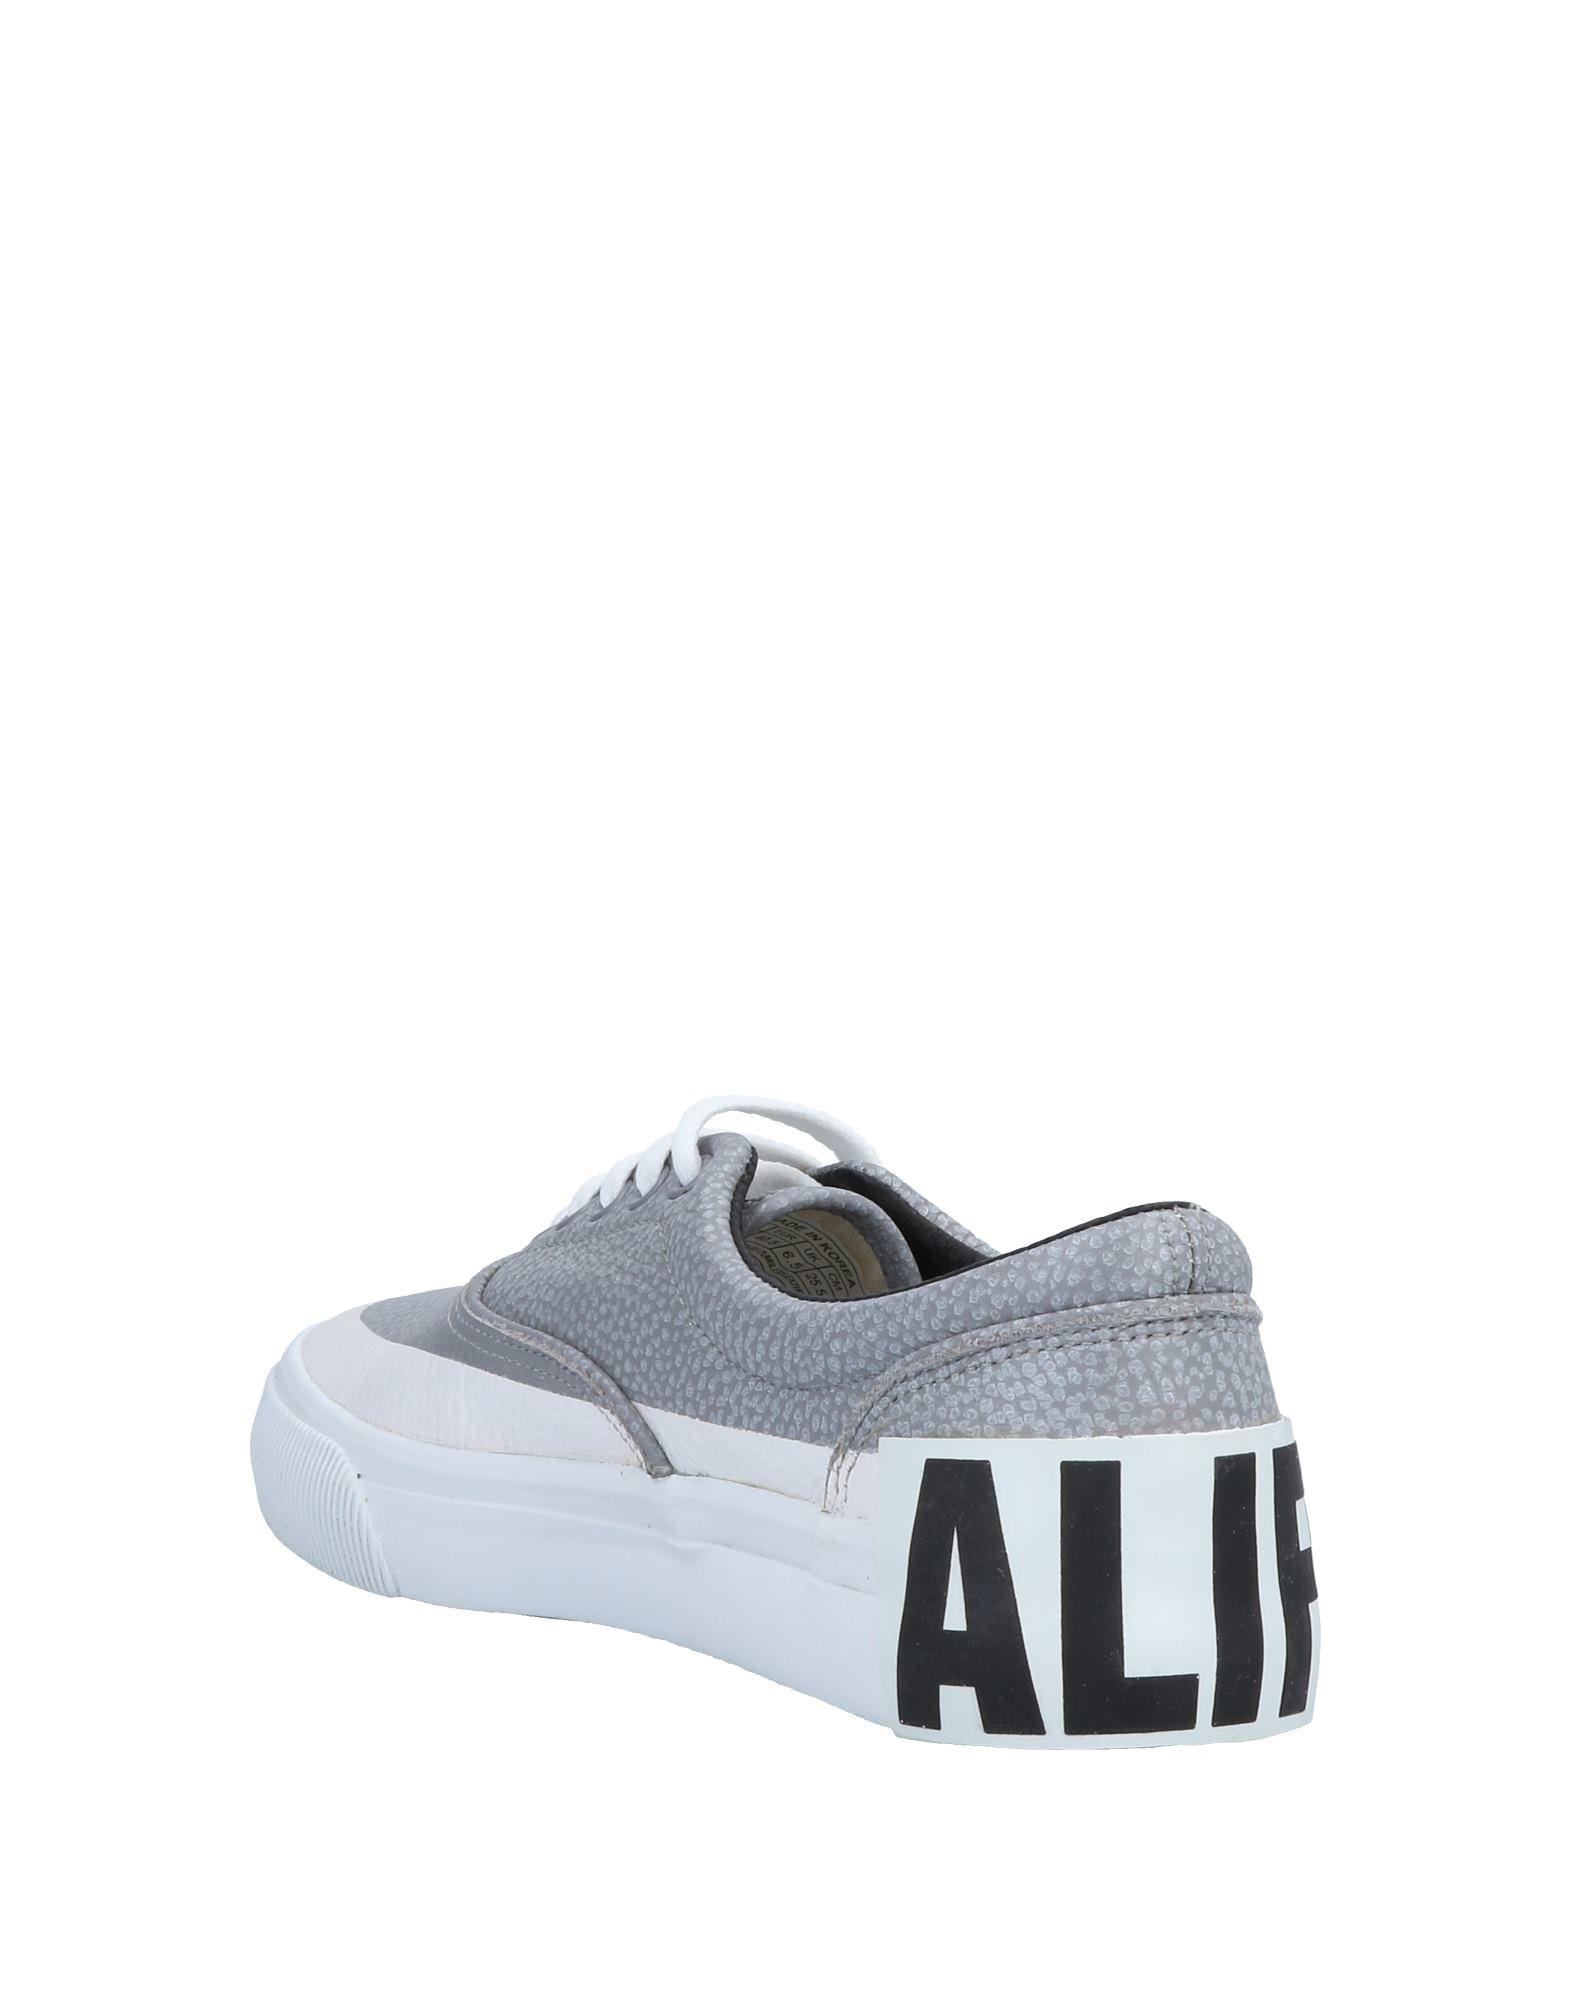 32a706e710e Lyst - Alife Low-tops   Sneakers in Gray for Men